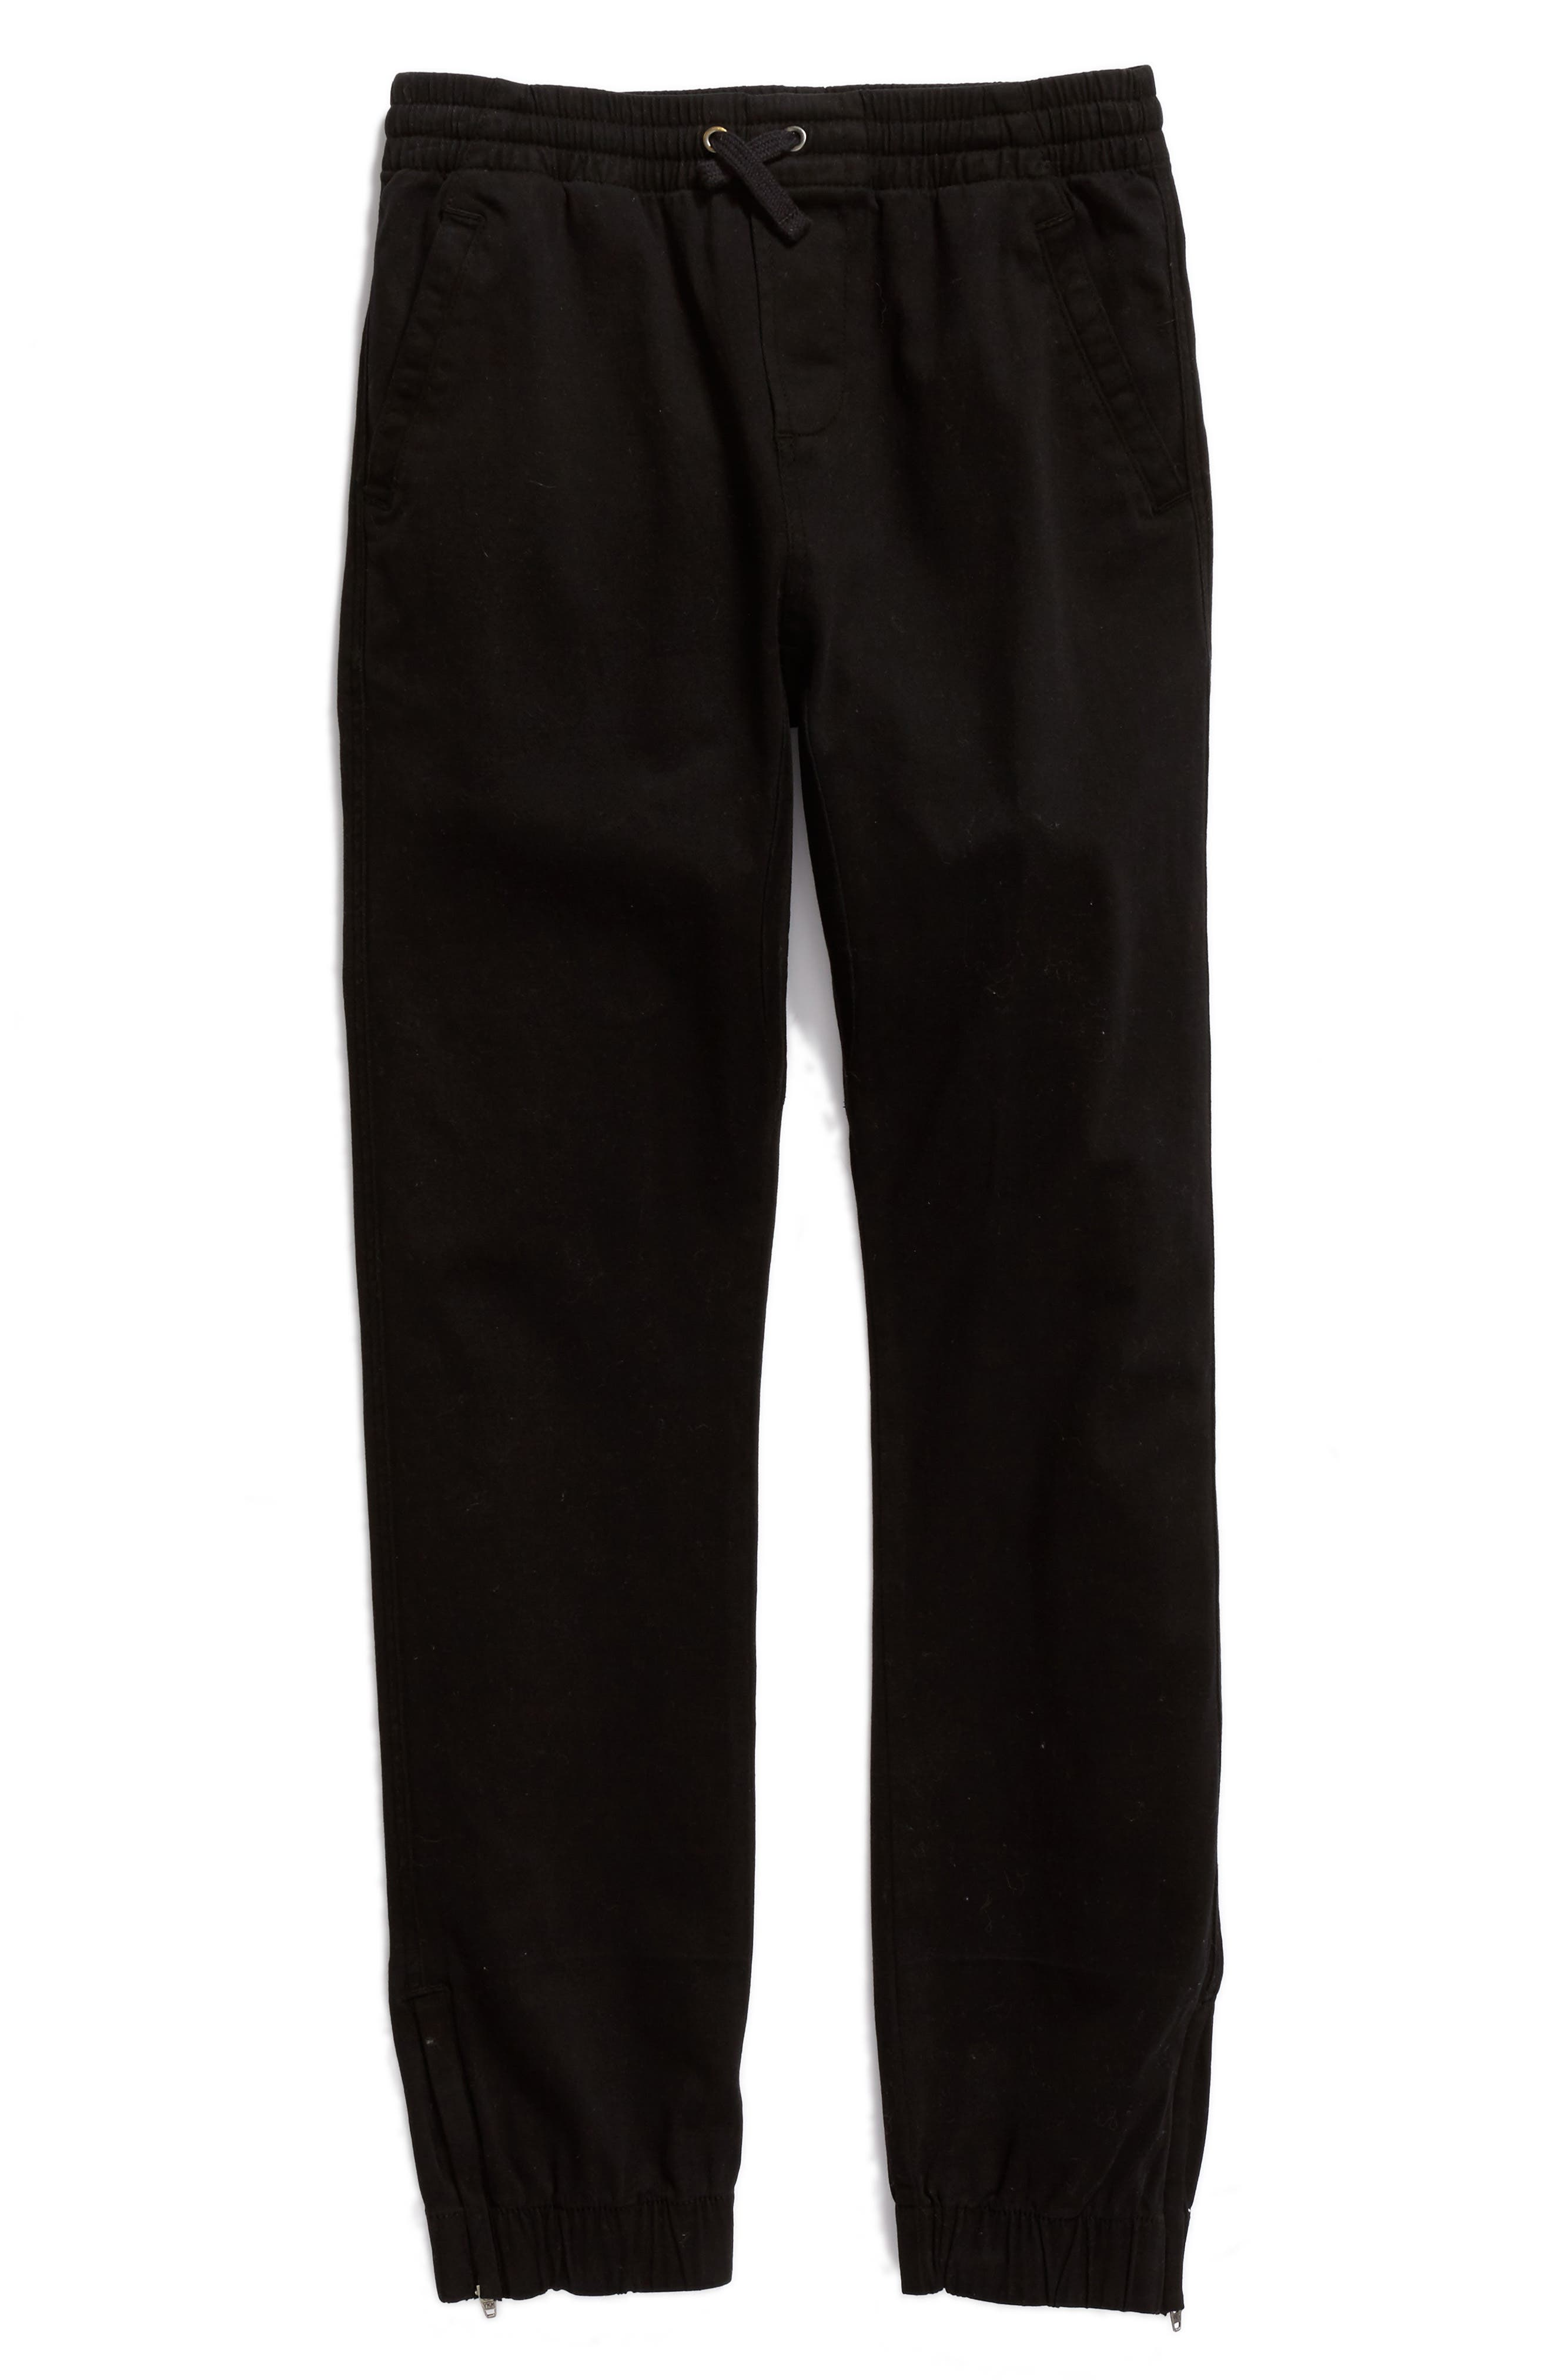 Washed Sweatpants,                             Main thumbnail 1, color,                             Black